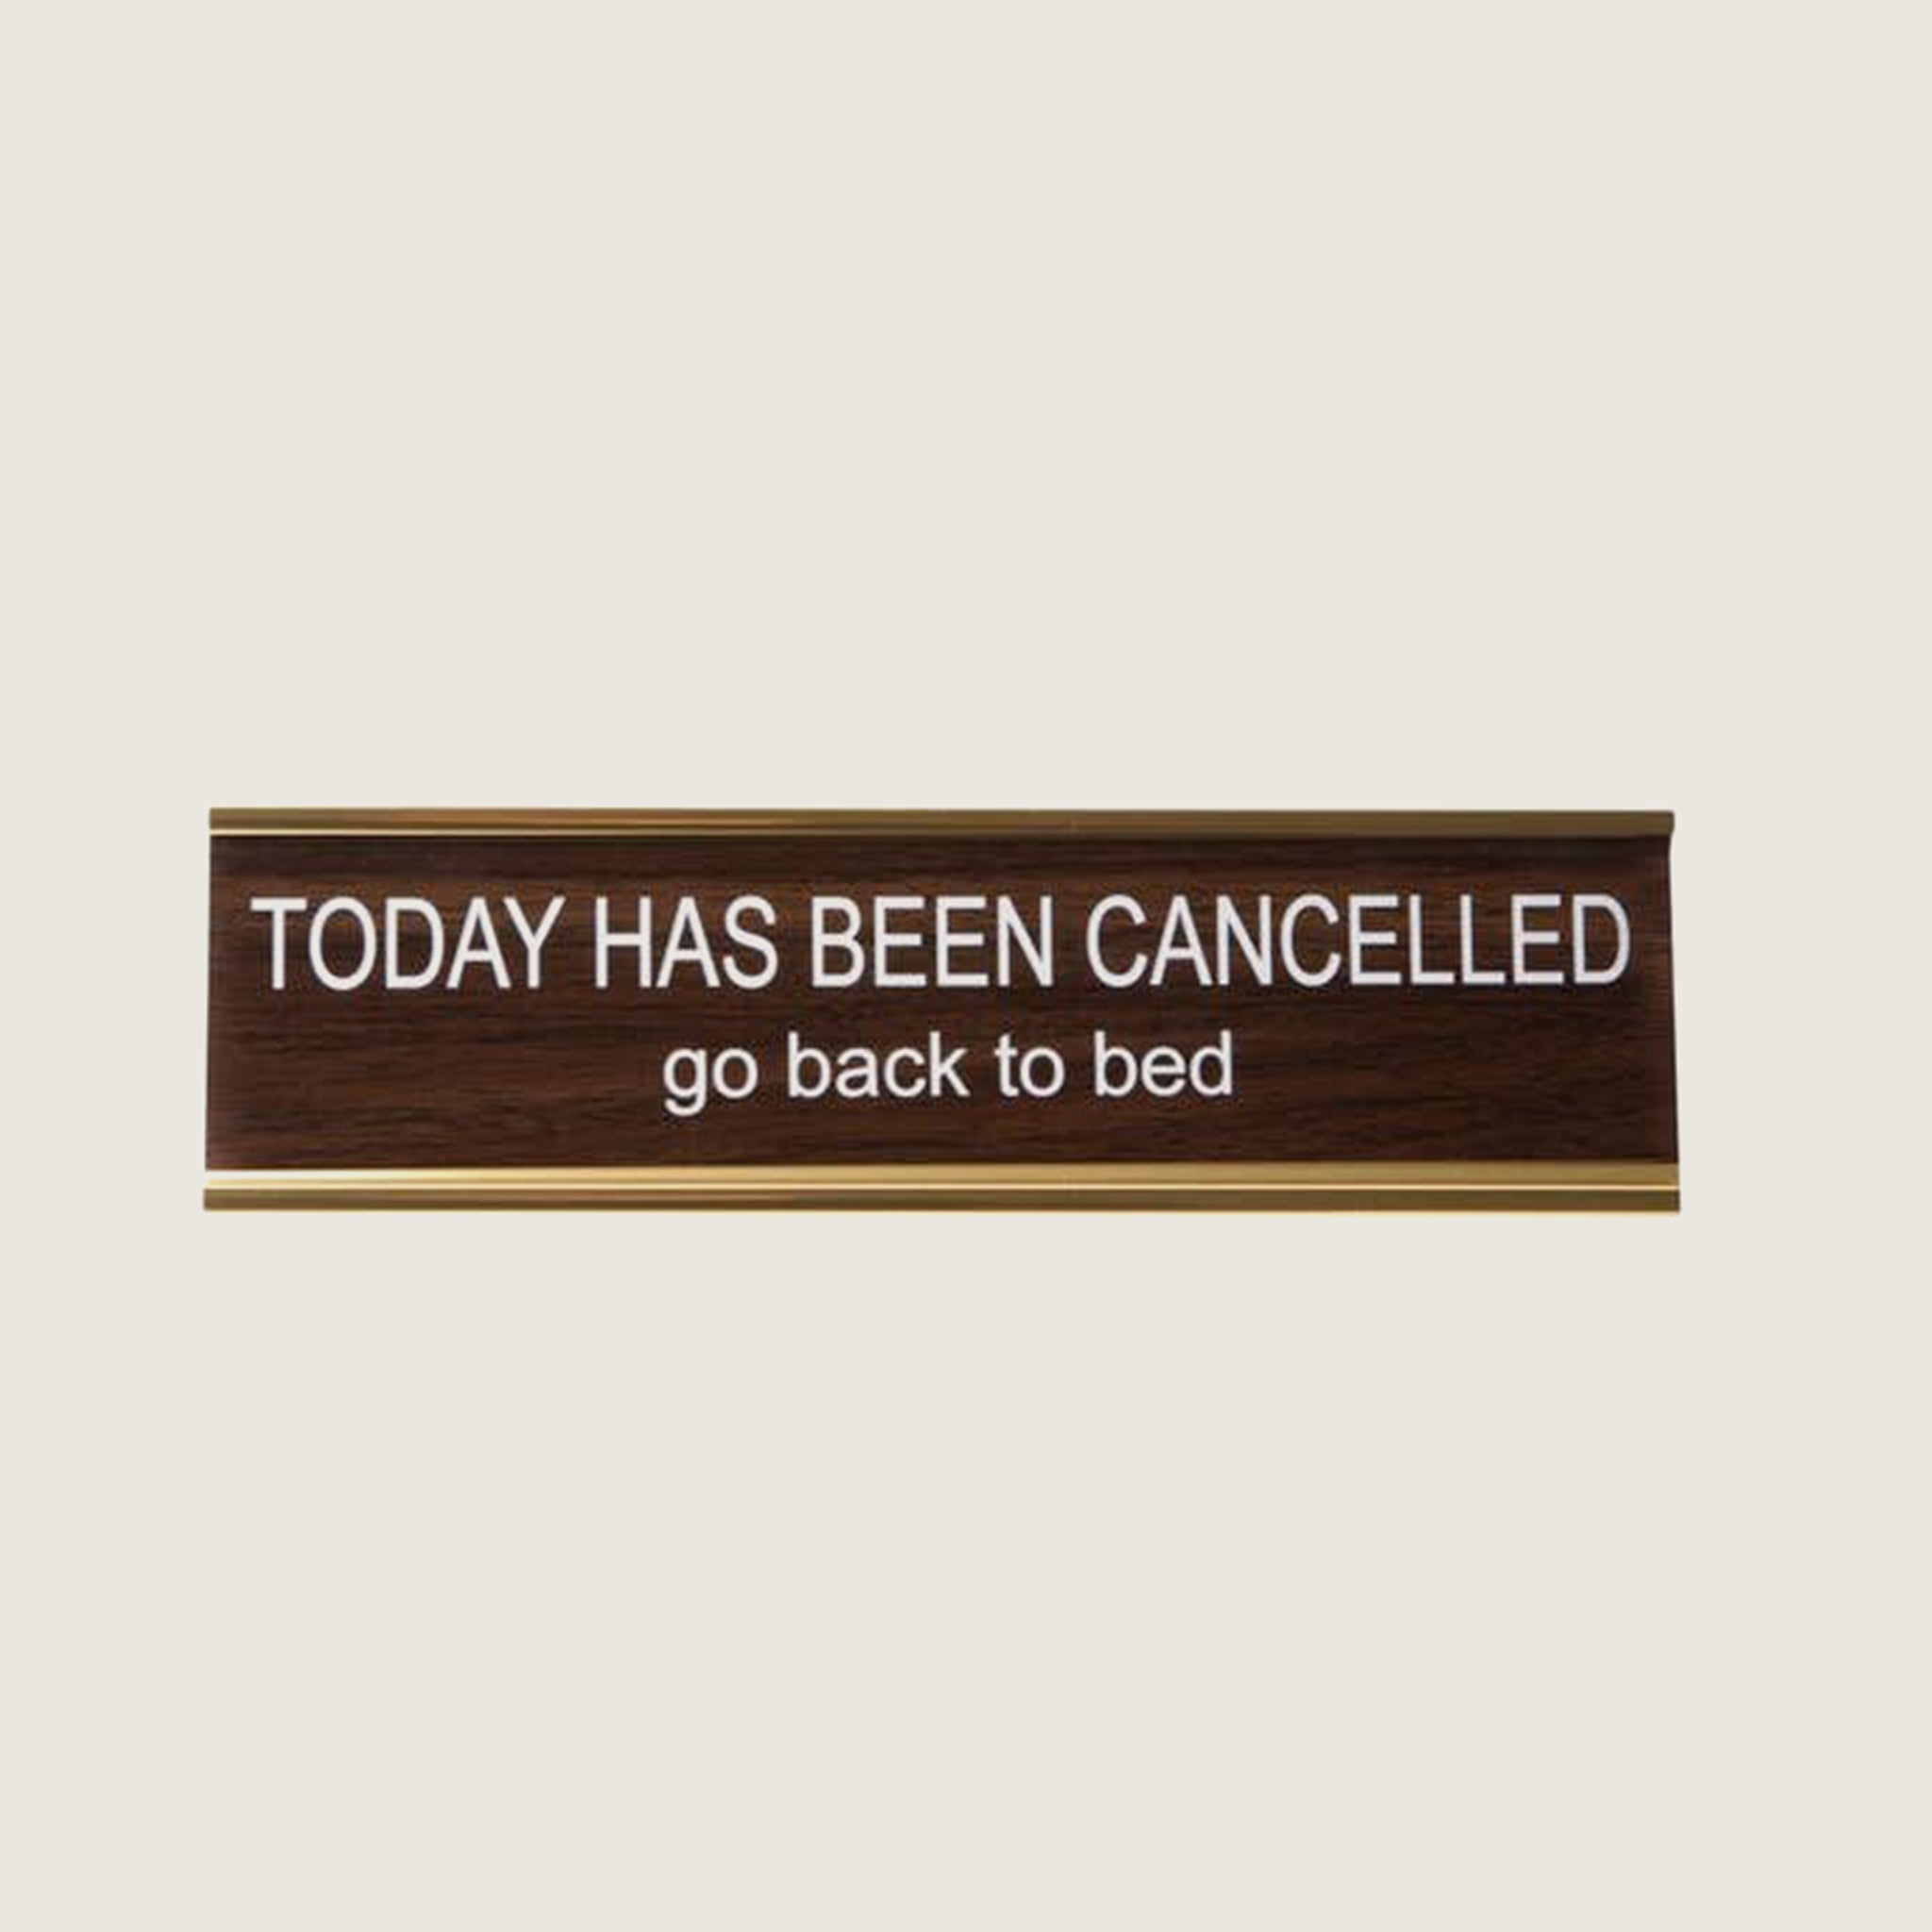 Today Has Been Cancelled, Go Back To Bed - Blackbird General Store